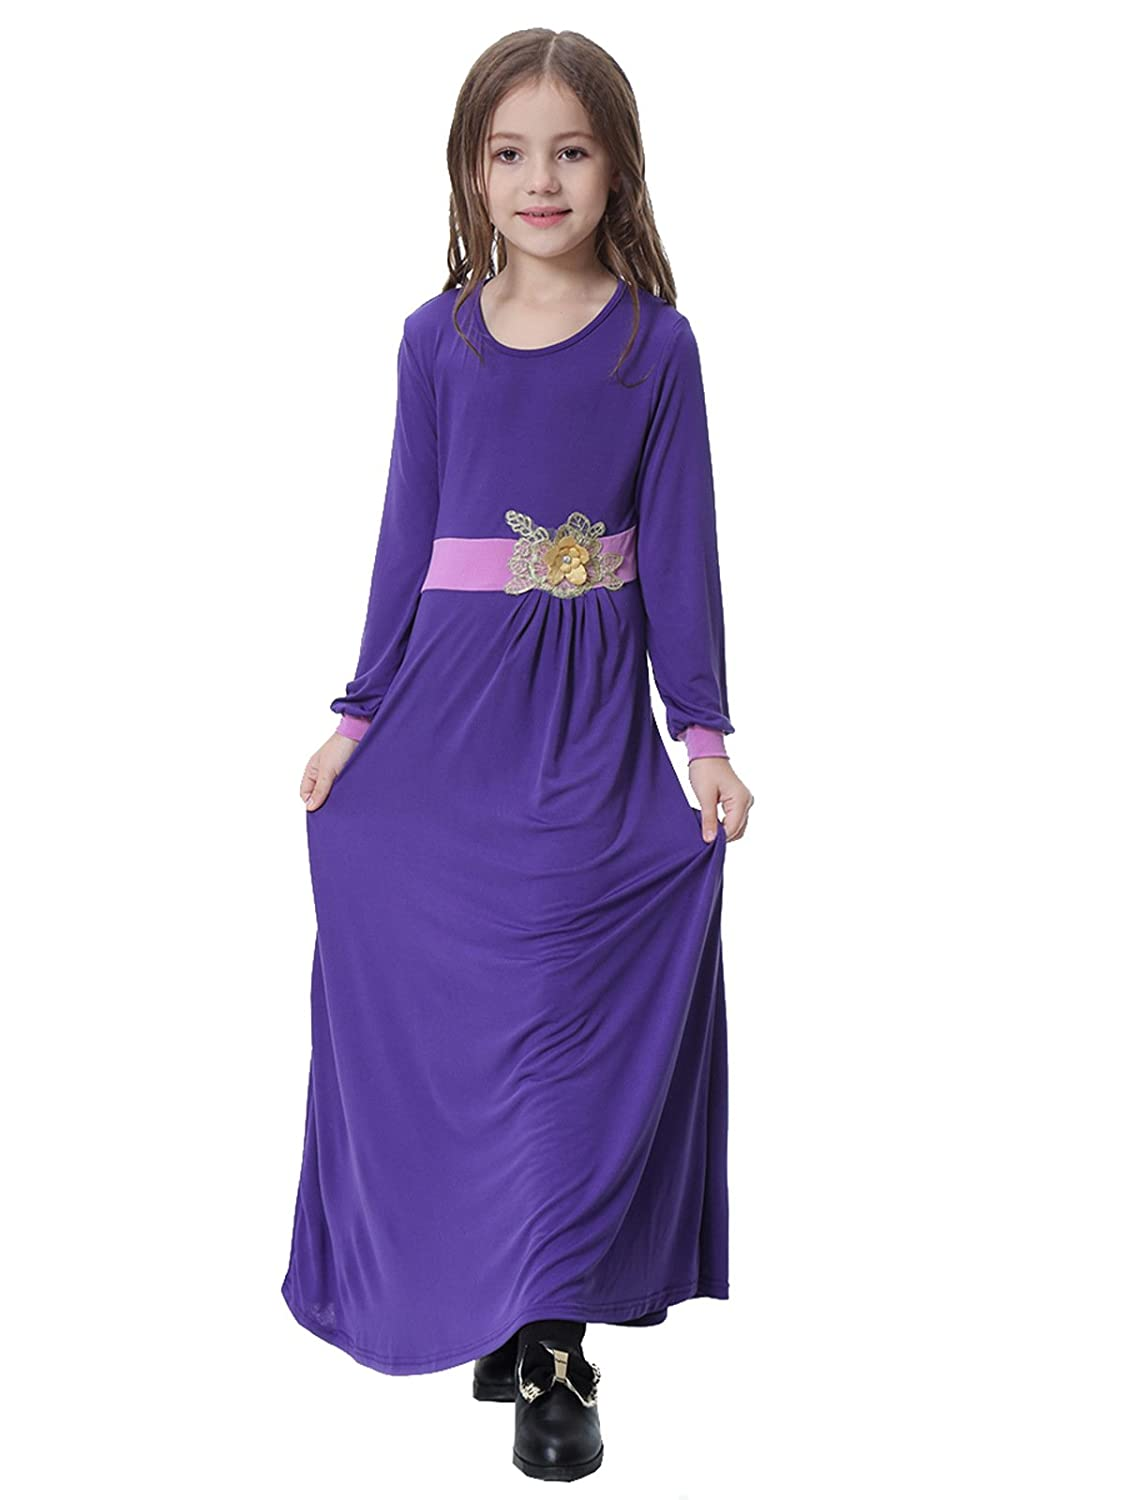 Muslim Girls Dresses